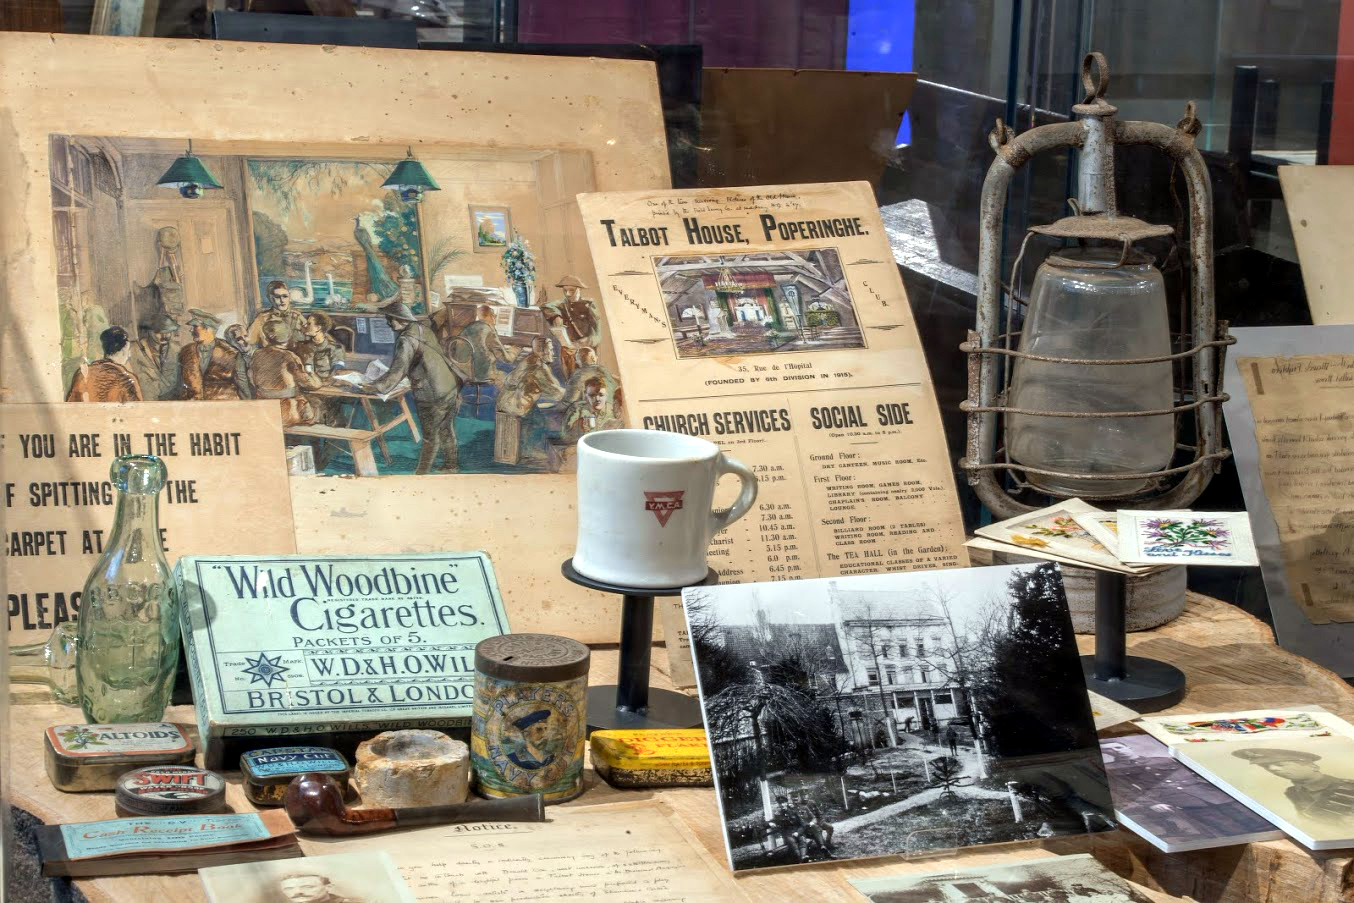 Items on display at the Talbot House Museum